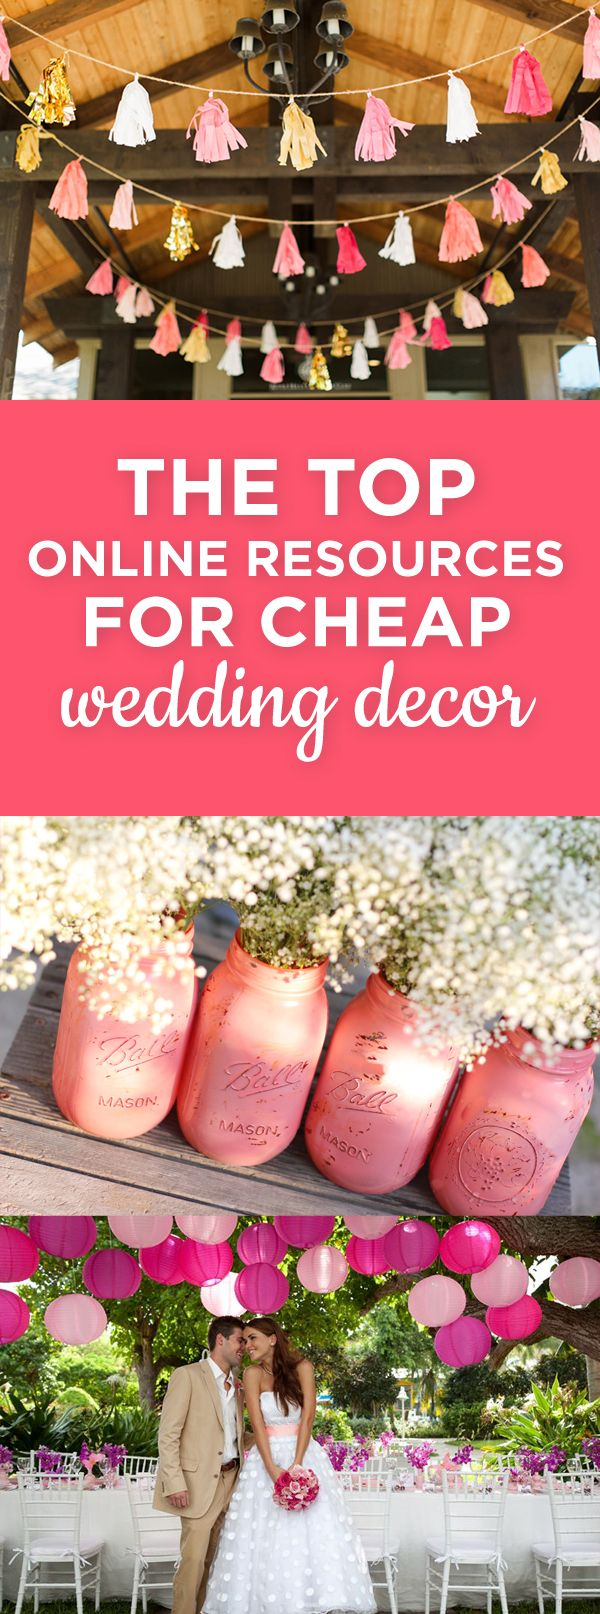 The Top Online Resources For Cheap Wedding Decor